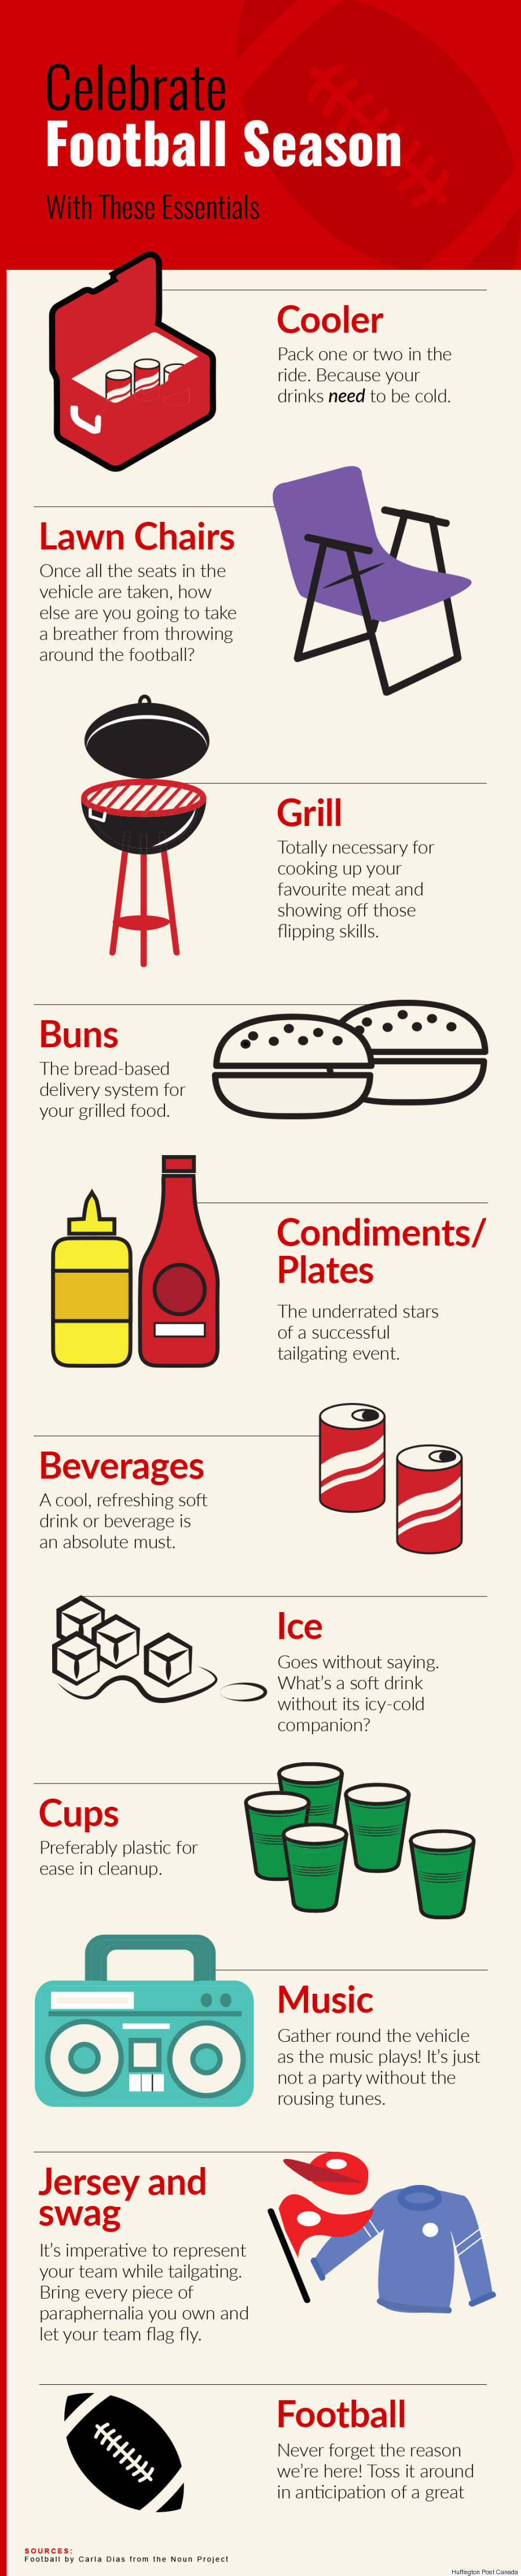 new infographic tailgating